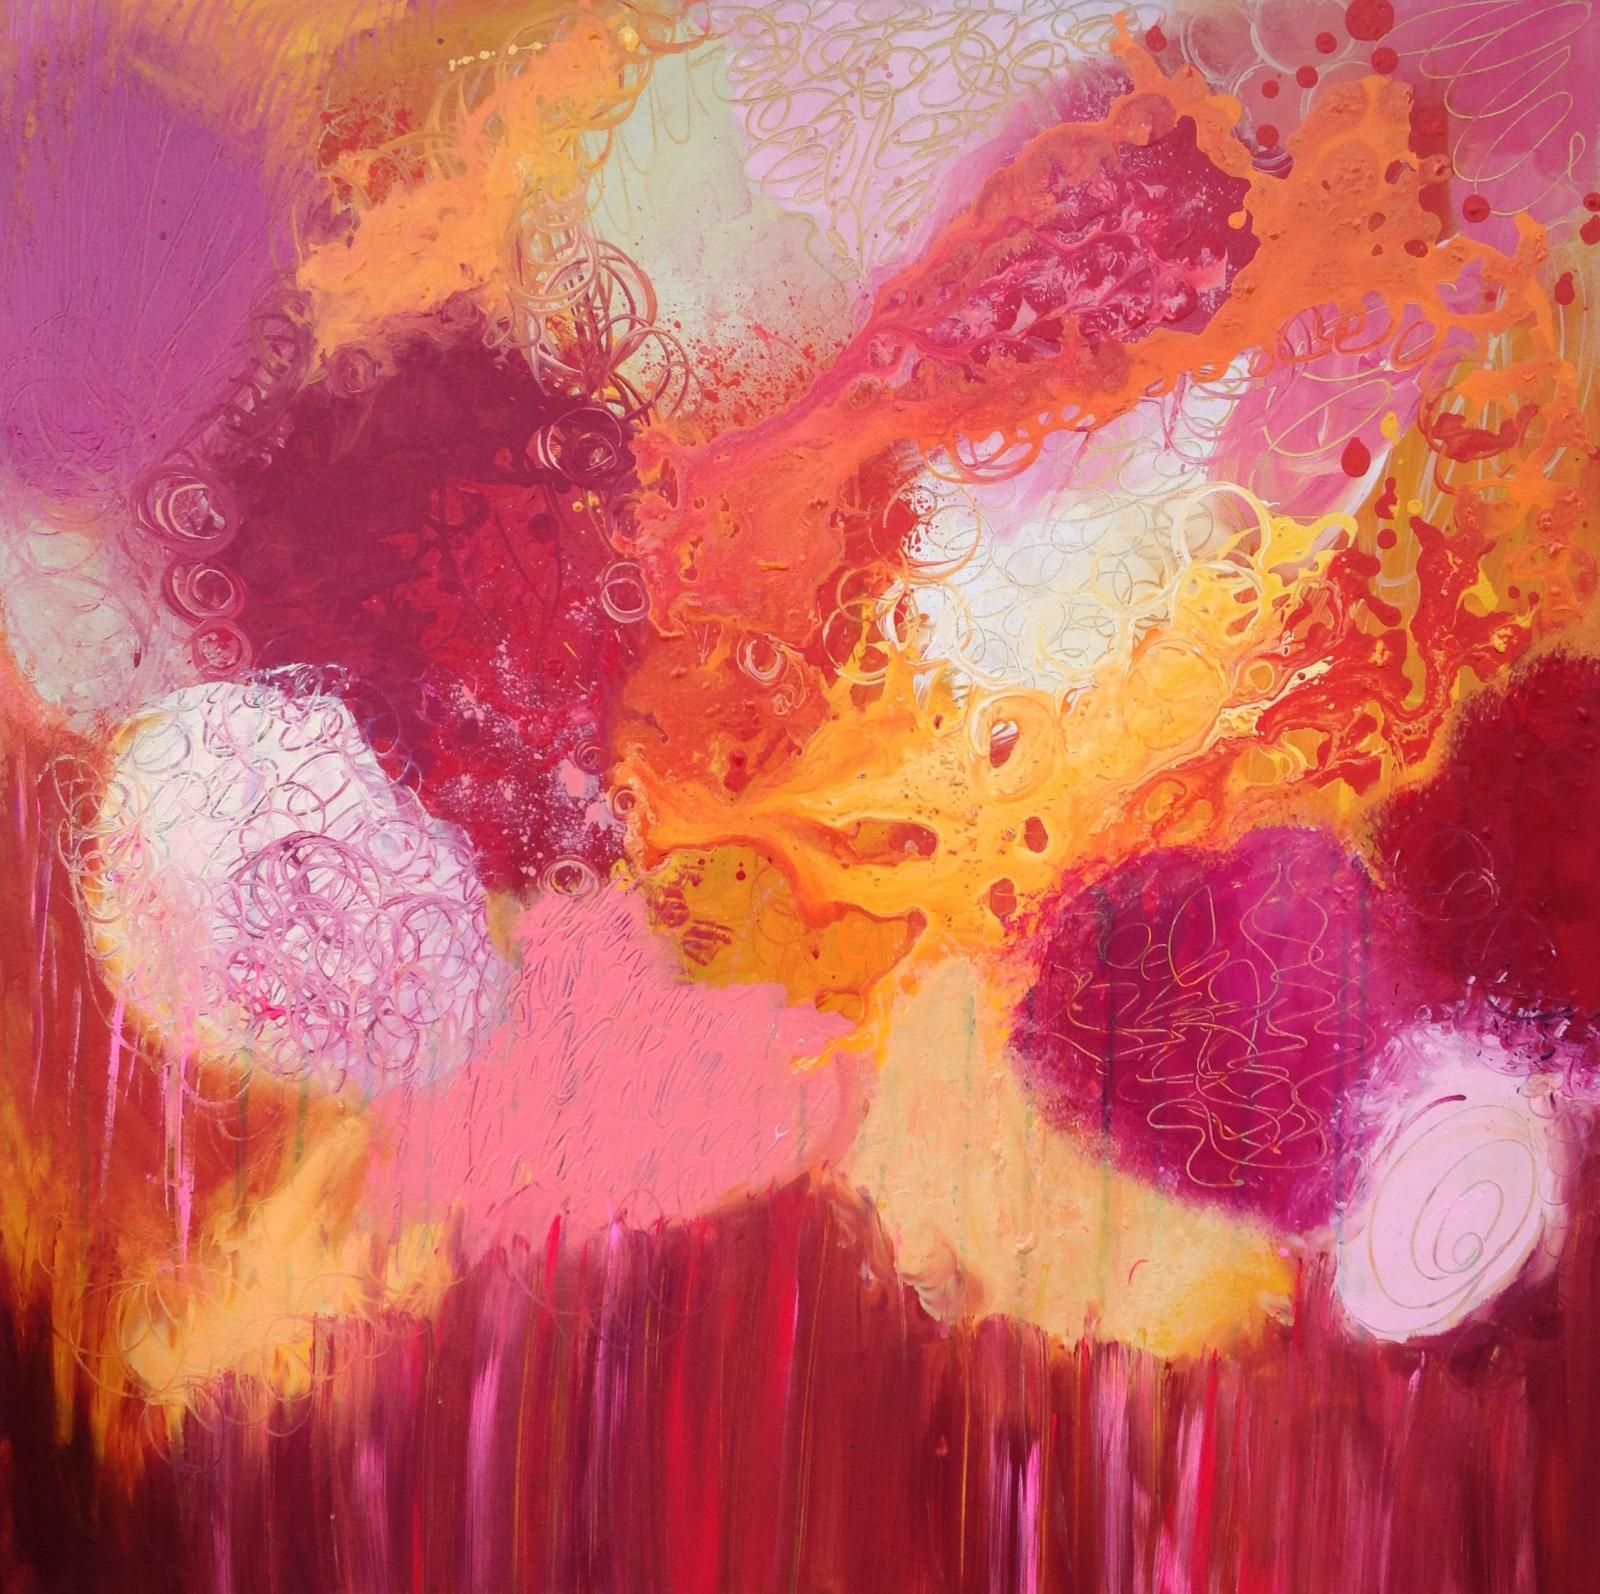 Hot Spring Abstract art painting By Leanne Hughes